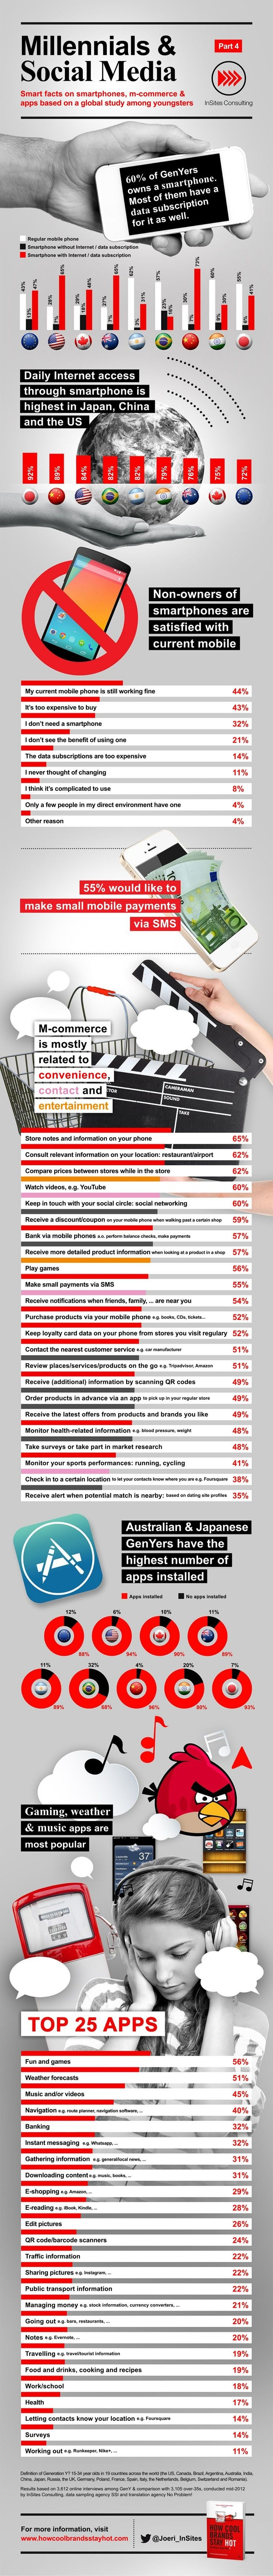 Millennials And Smartphones Stats Apps And m merce infographic